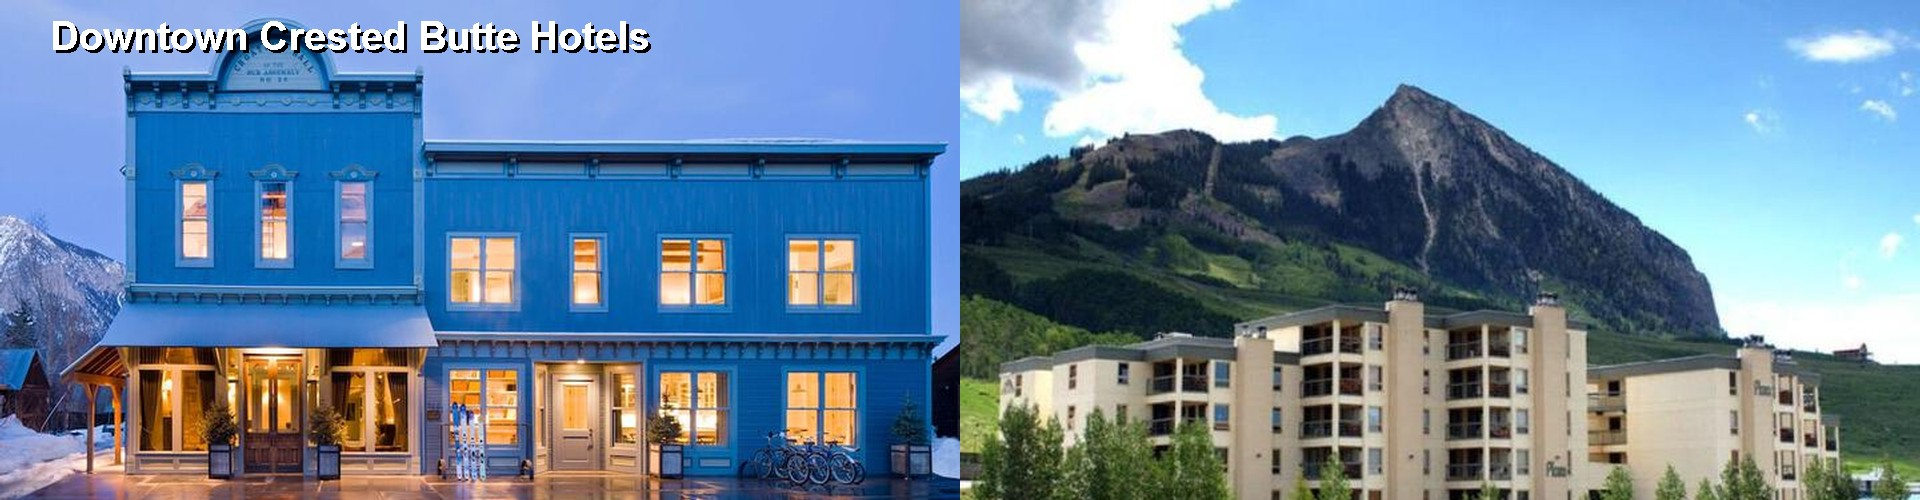 5 Best Hotels near Downtown Crested Butte